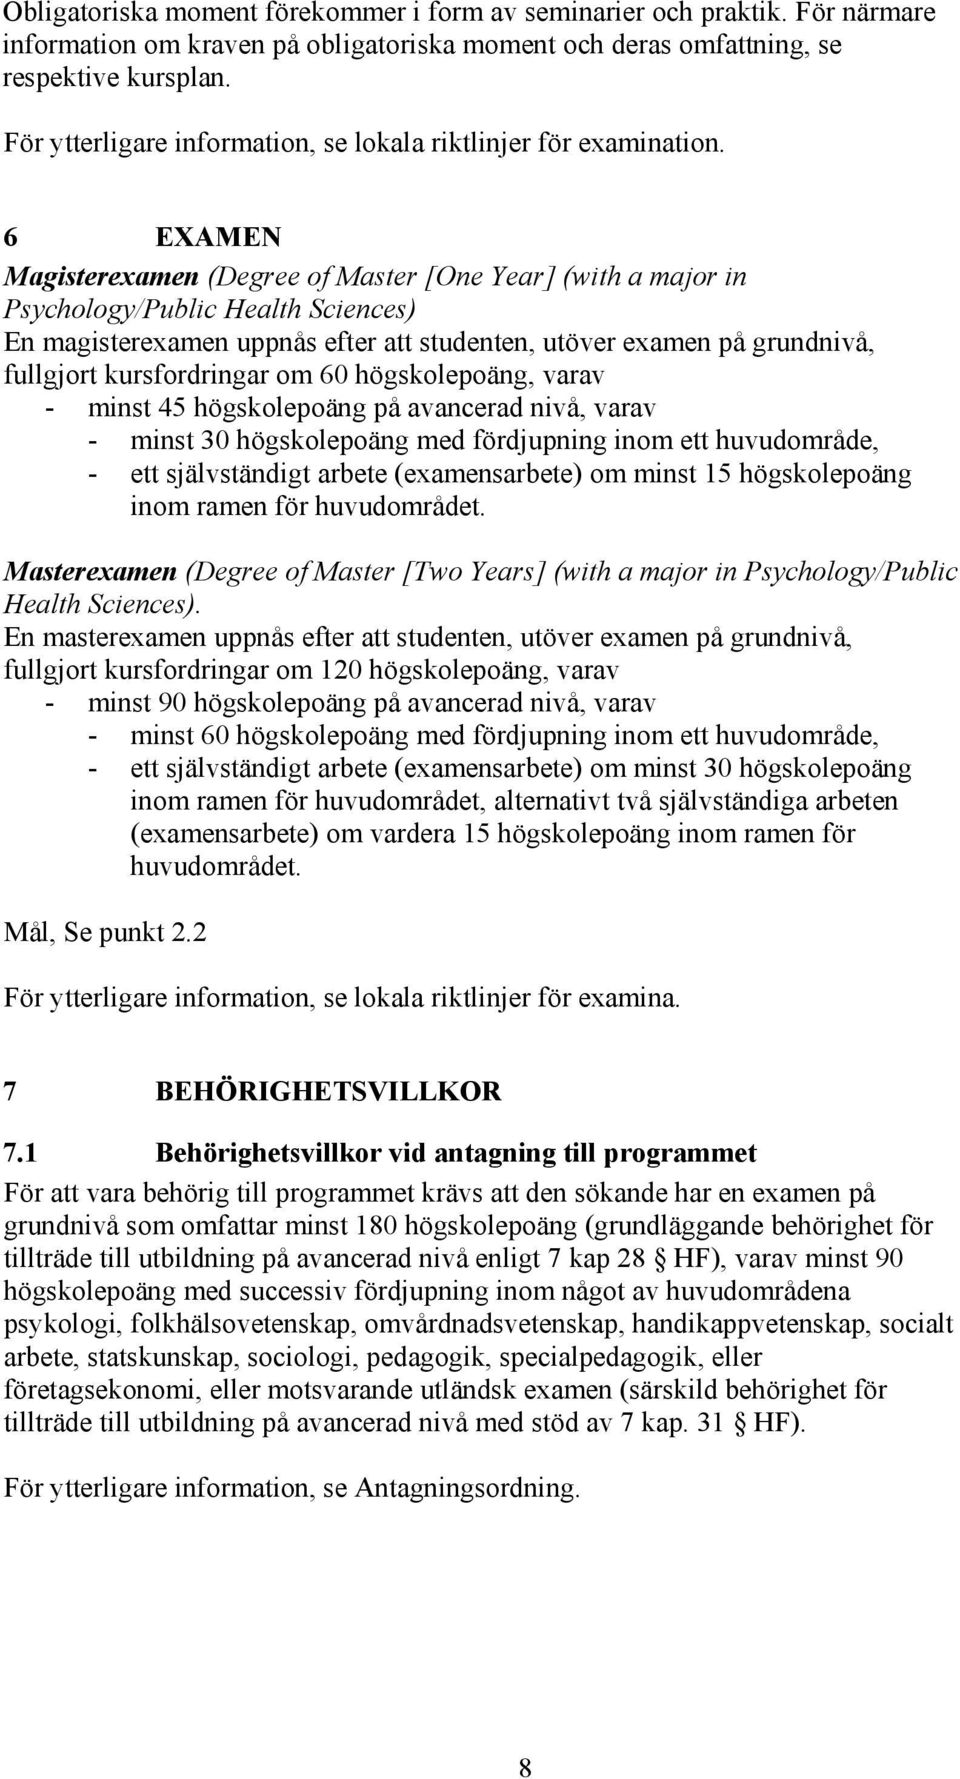 6 EXAMEN Magisterexamen (Degree of Master [One Year] (with a major in Psychology/Public Health Sciences) En magisterexamen uppnås efter att studenten, utöver examen på grundnivå, fullgjort